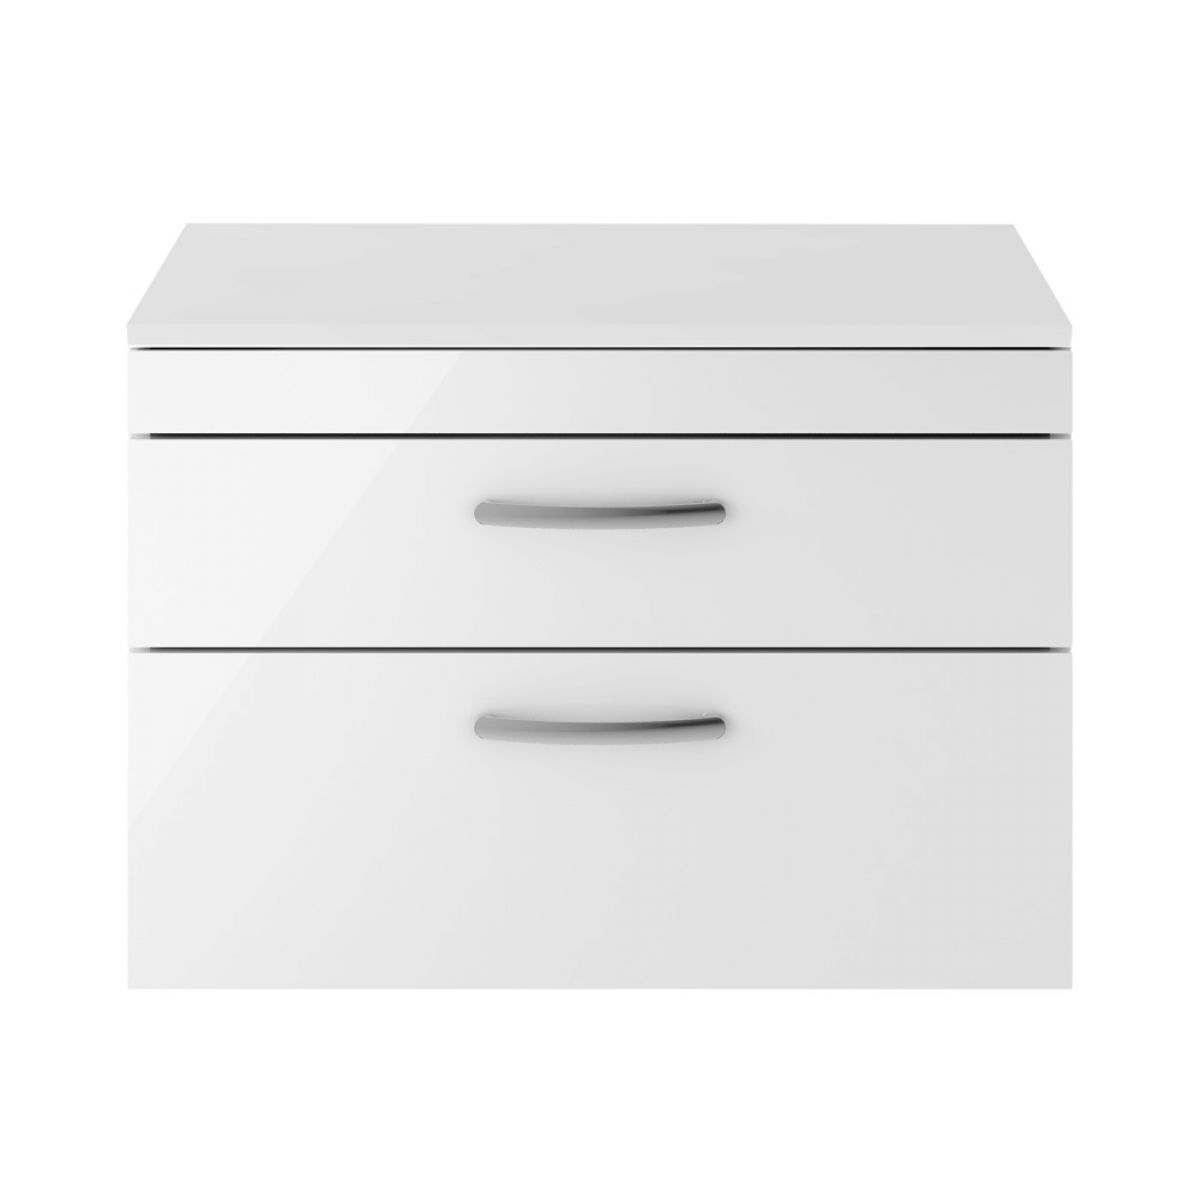 Premier Athena Gloss White 2 Drawer Wall Hung Vanity Unit 800mm with Worktop